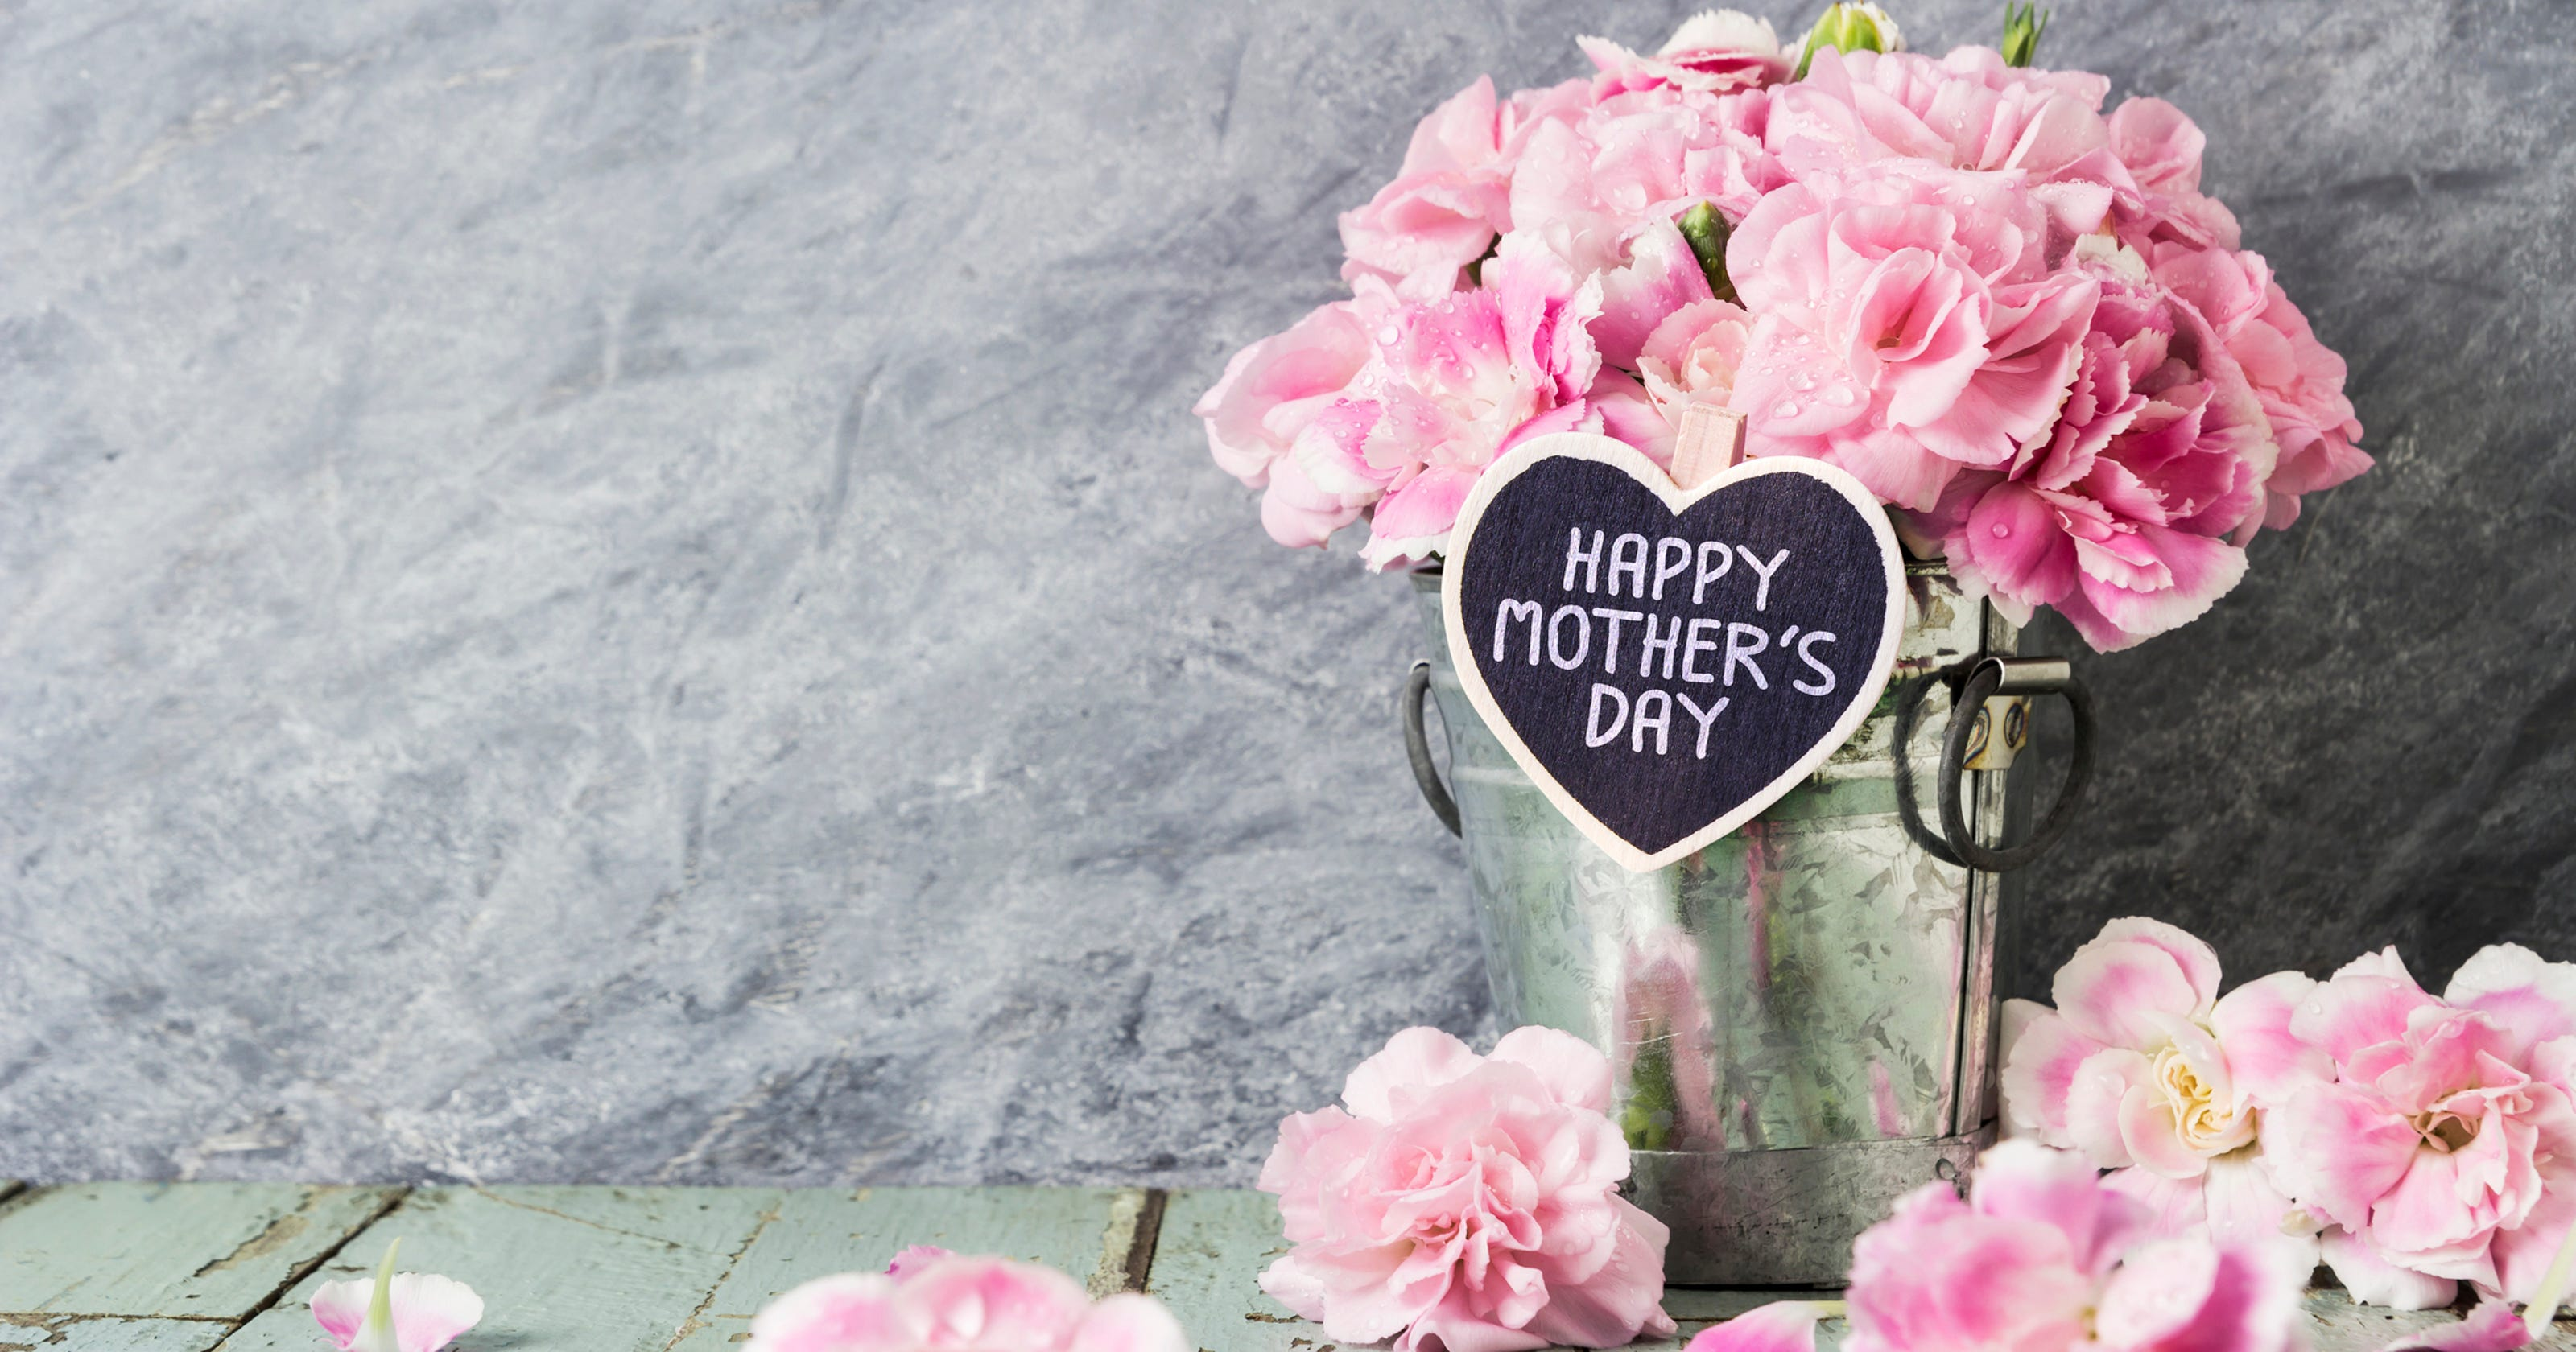 Mothers Day Flowers Why We Give Carnations To Our Moms